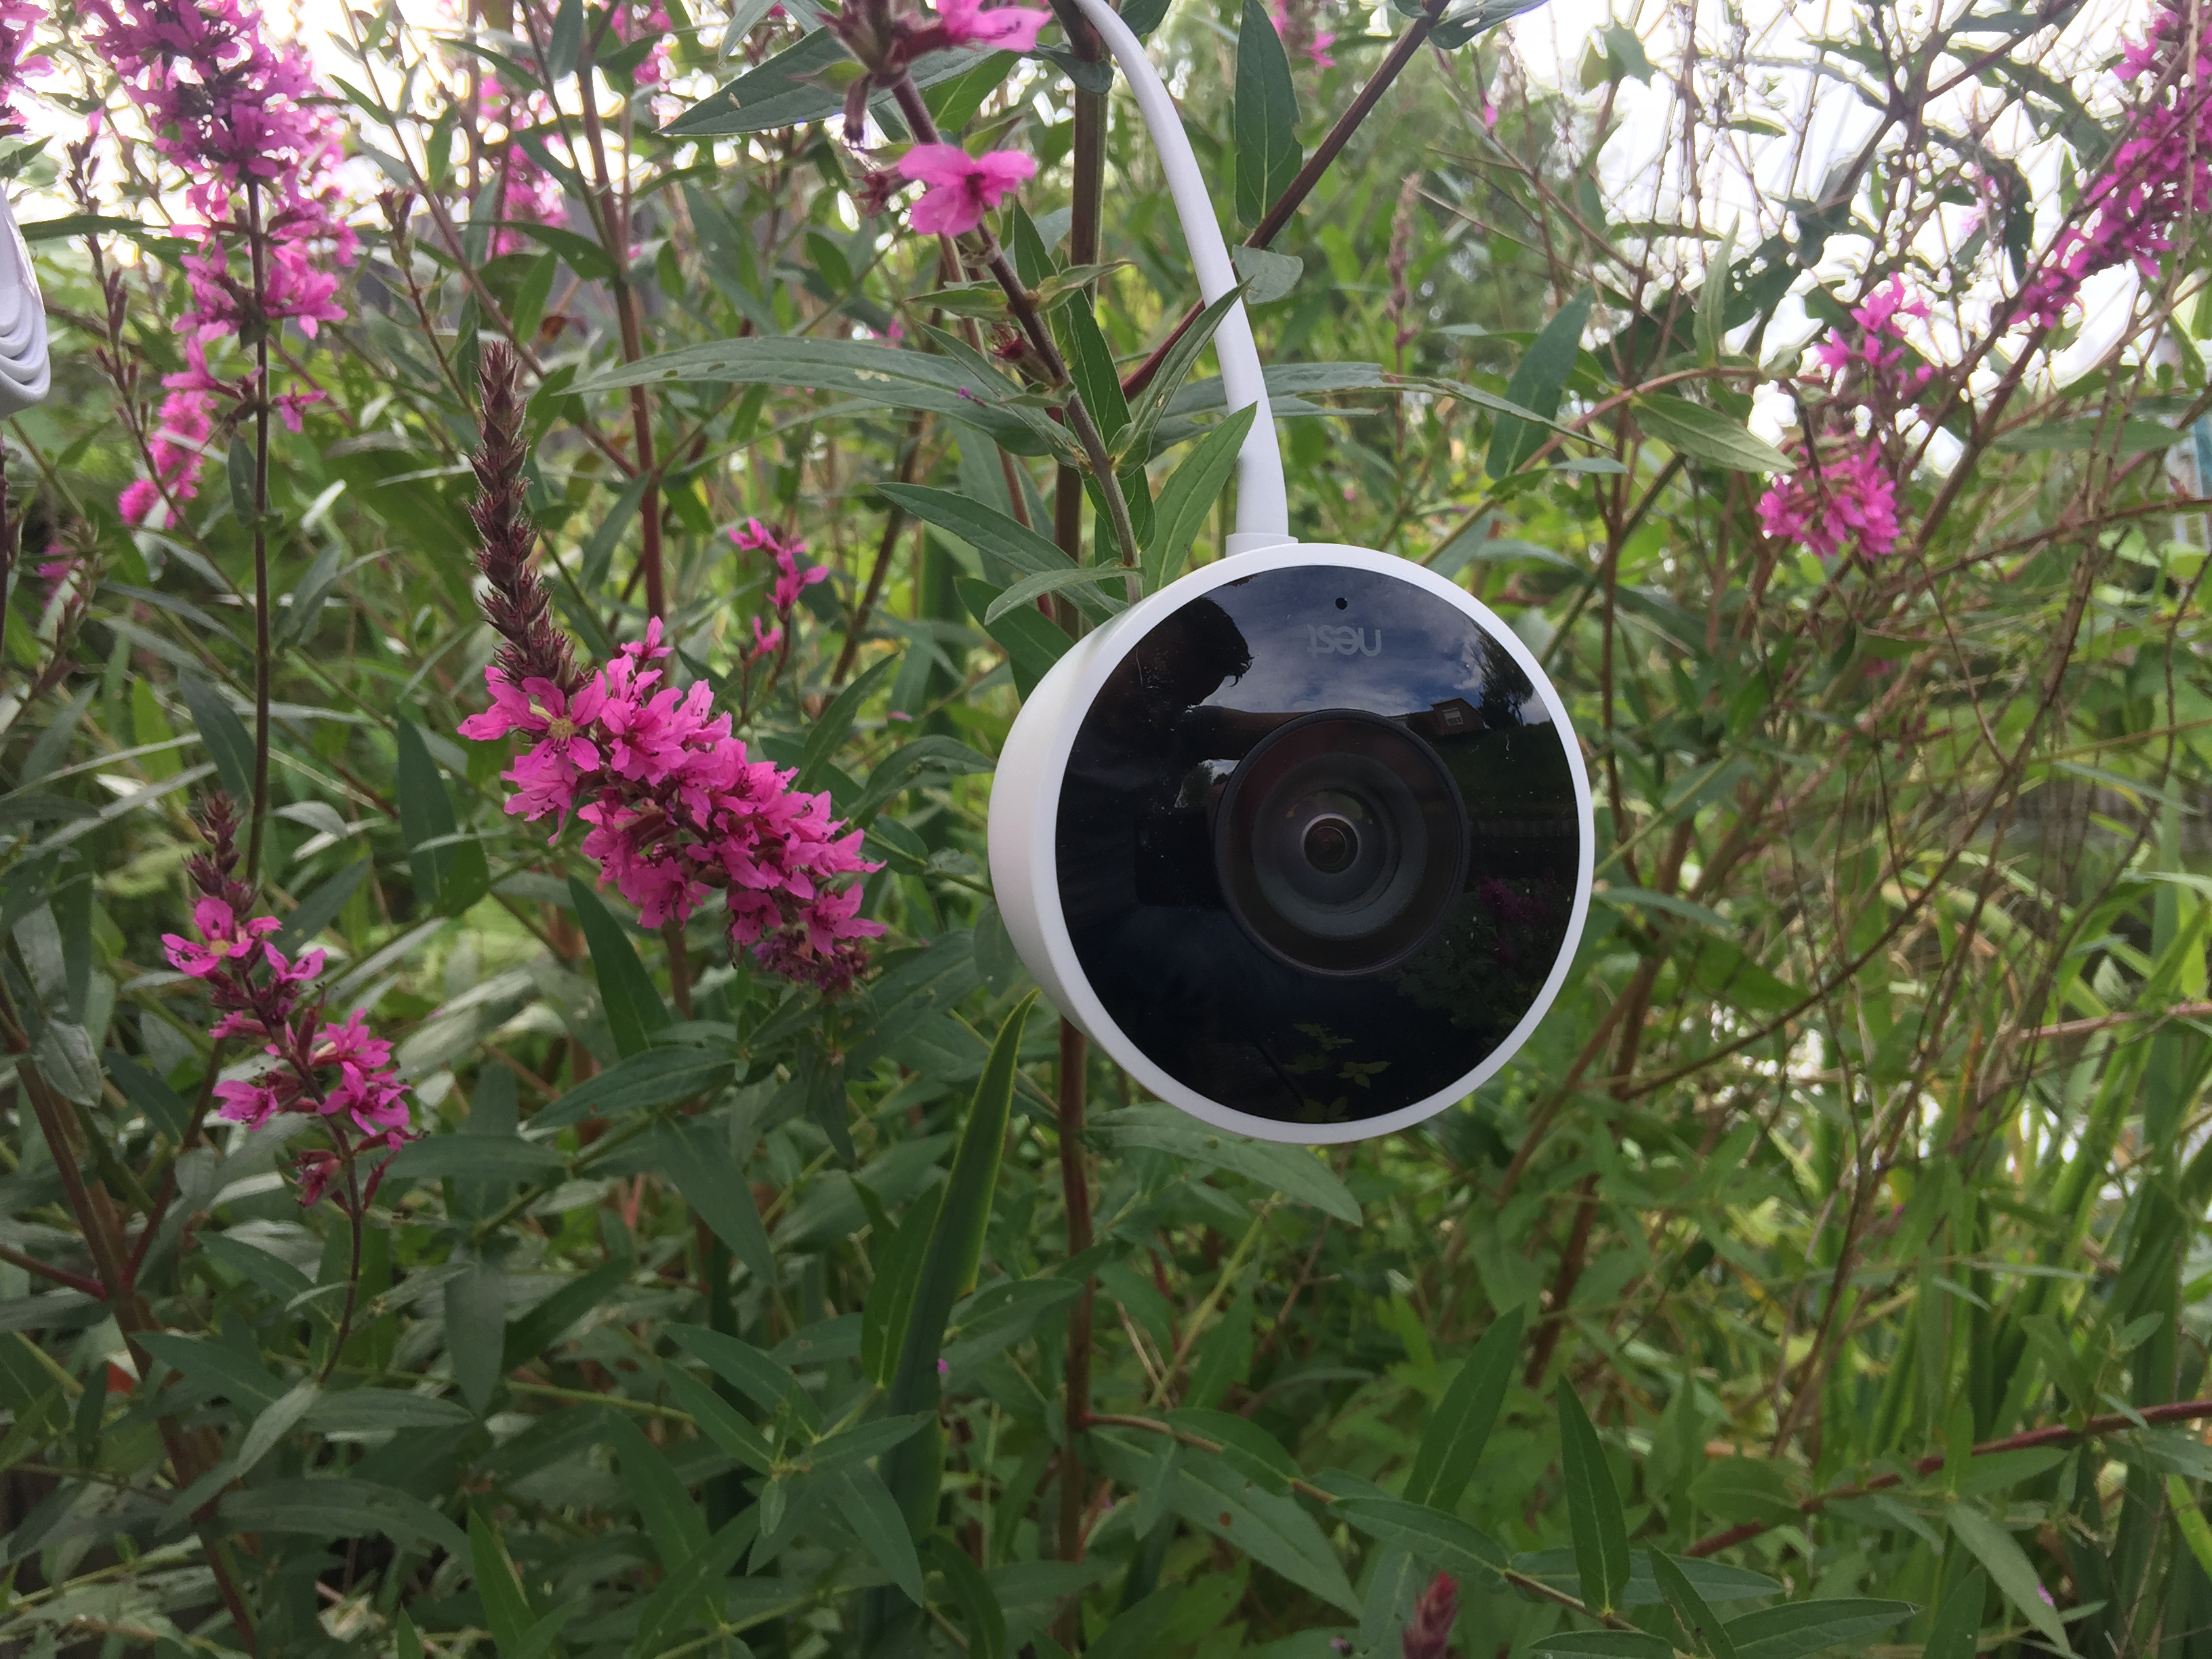 http://techgaming.nl/image_uploads/reviews/Nestcam-outdoor/low2.JPG